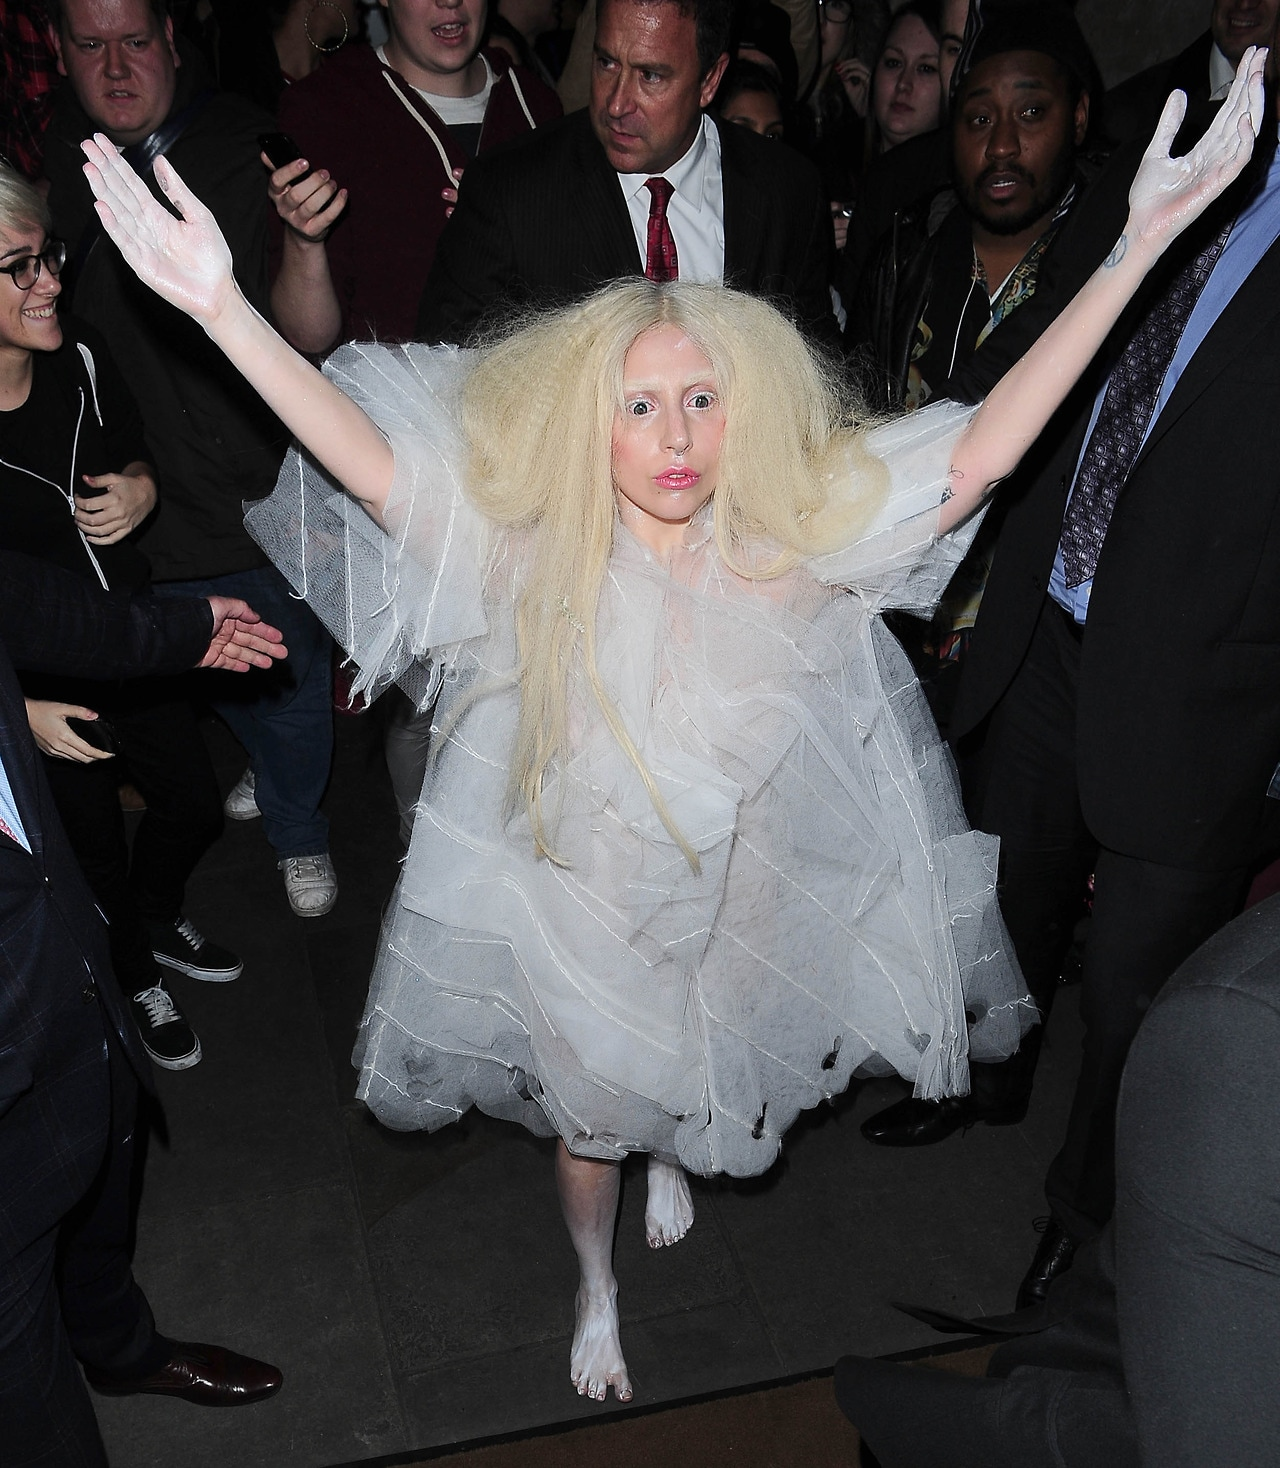 LADY GAGA ARRIVING IN LONDON